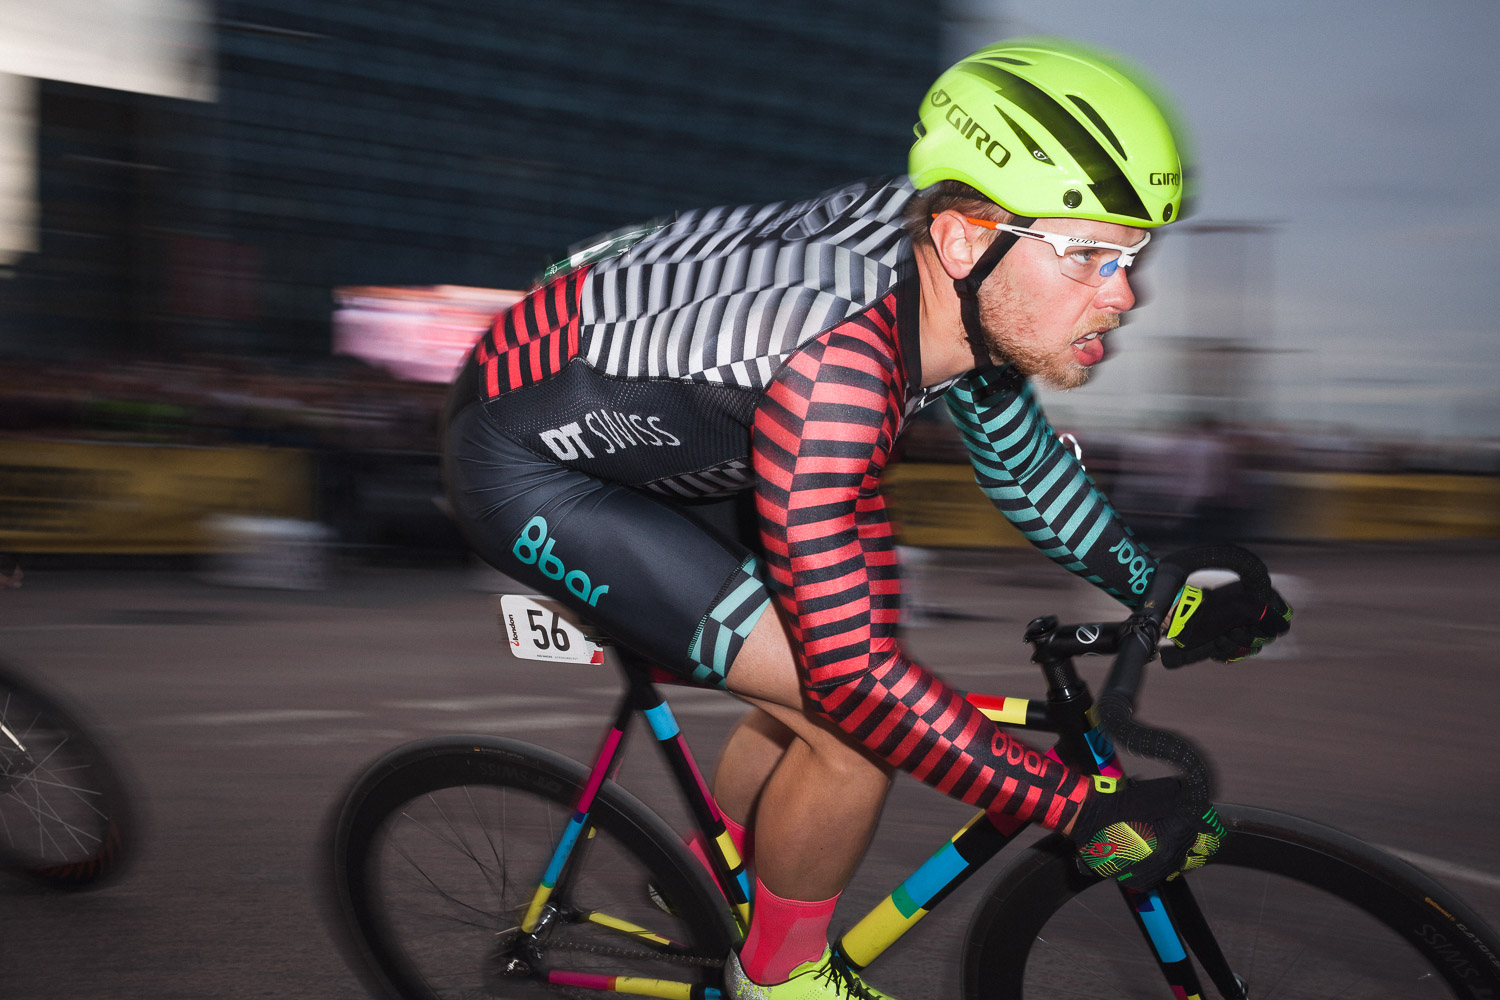 stefanhaehnel 8barbikes rhcl2 38 - 8bar cycling apparel now in stock!!!